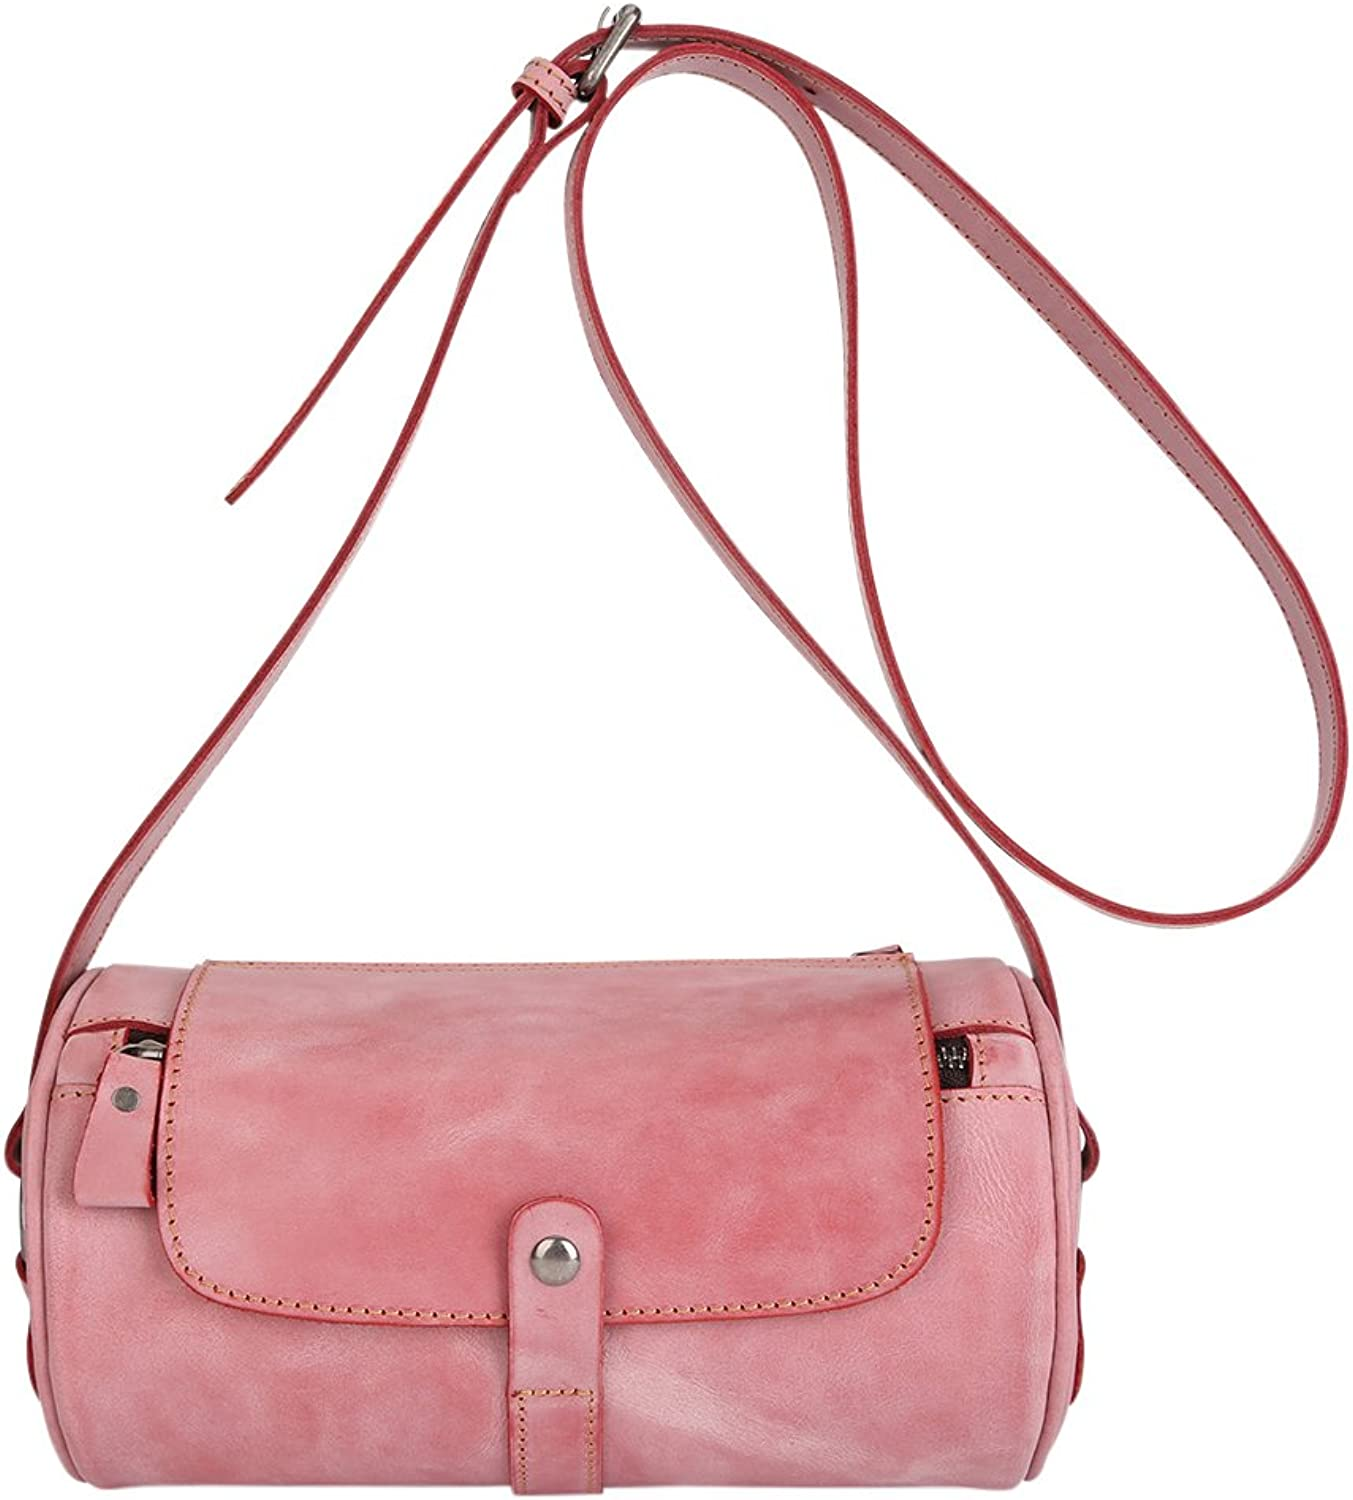 Genda 2Archer Small Leather Crossbody Purse Round Bag for Womens